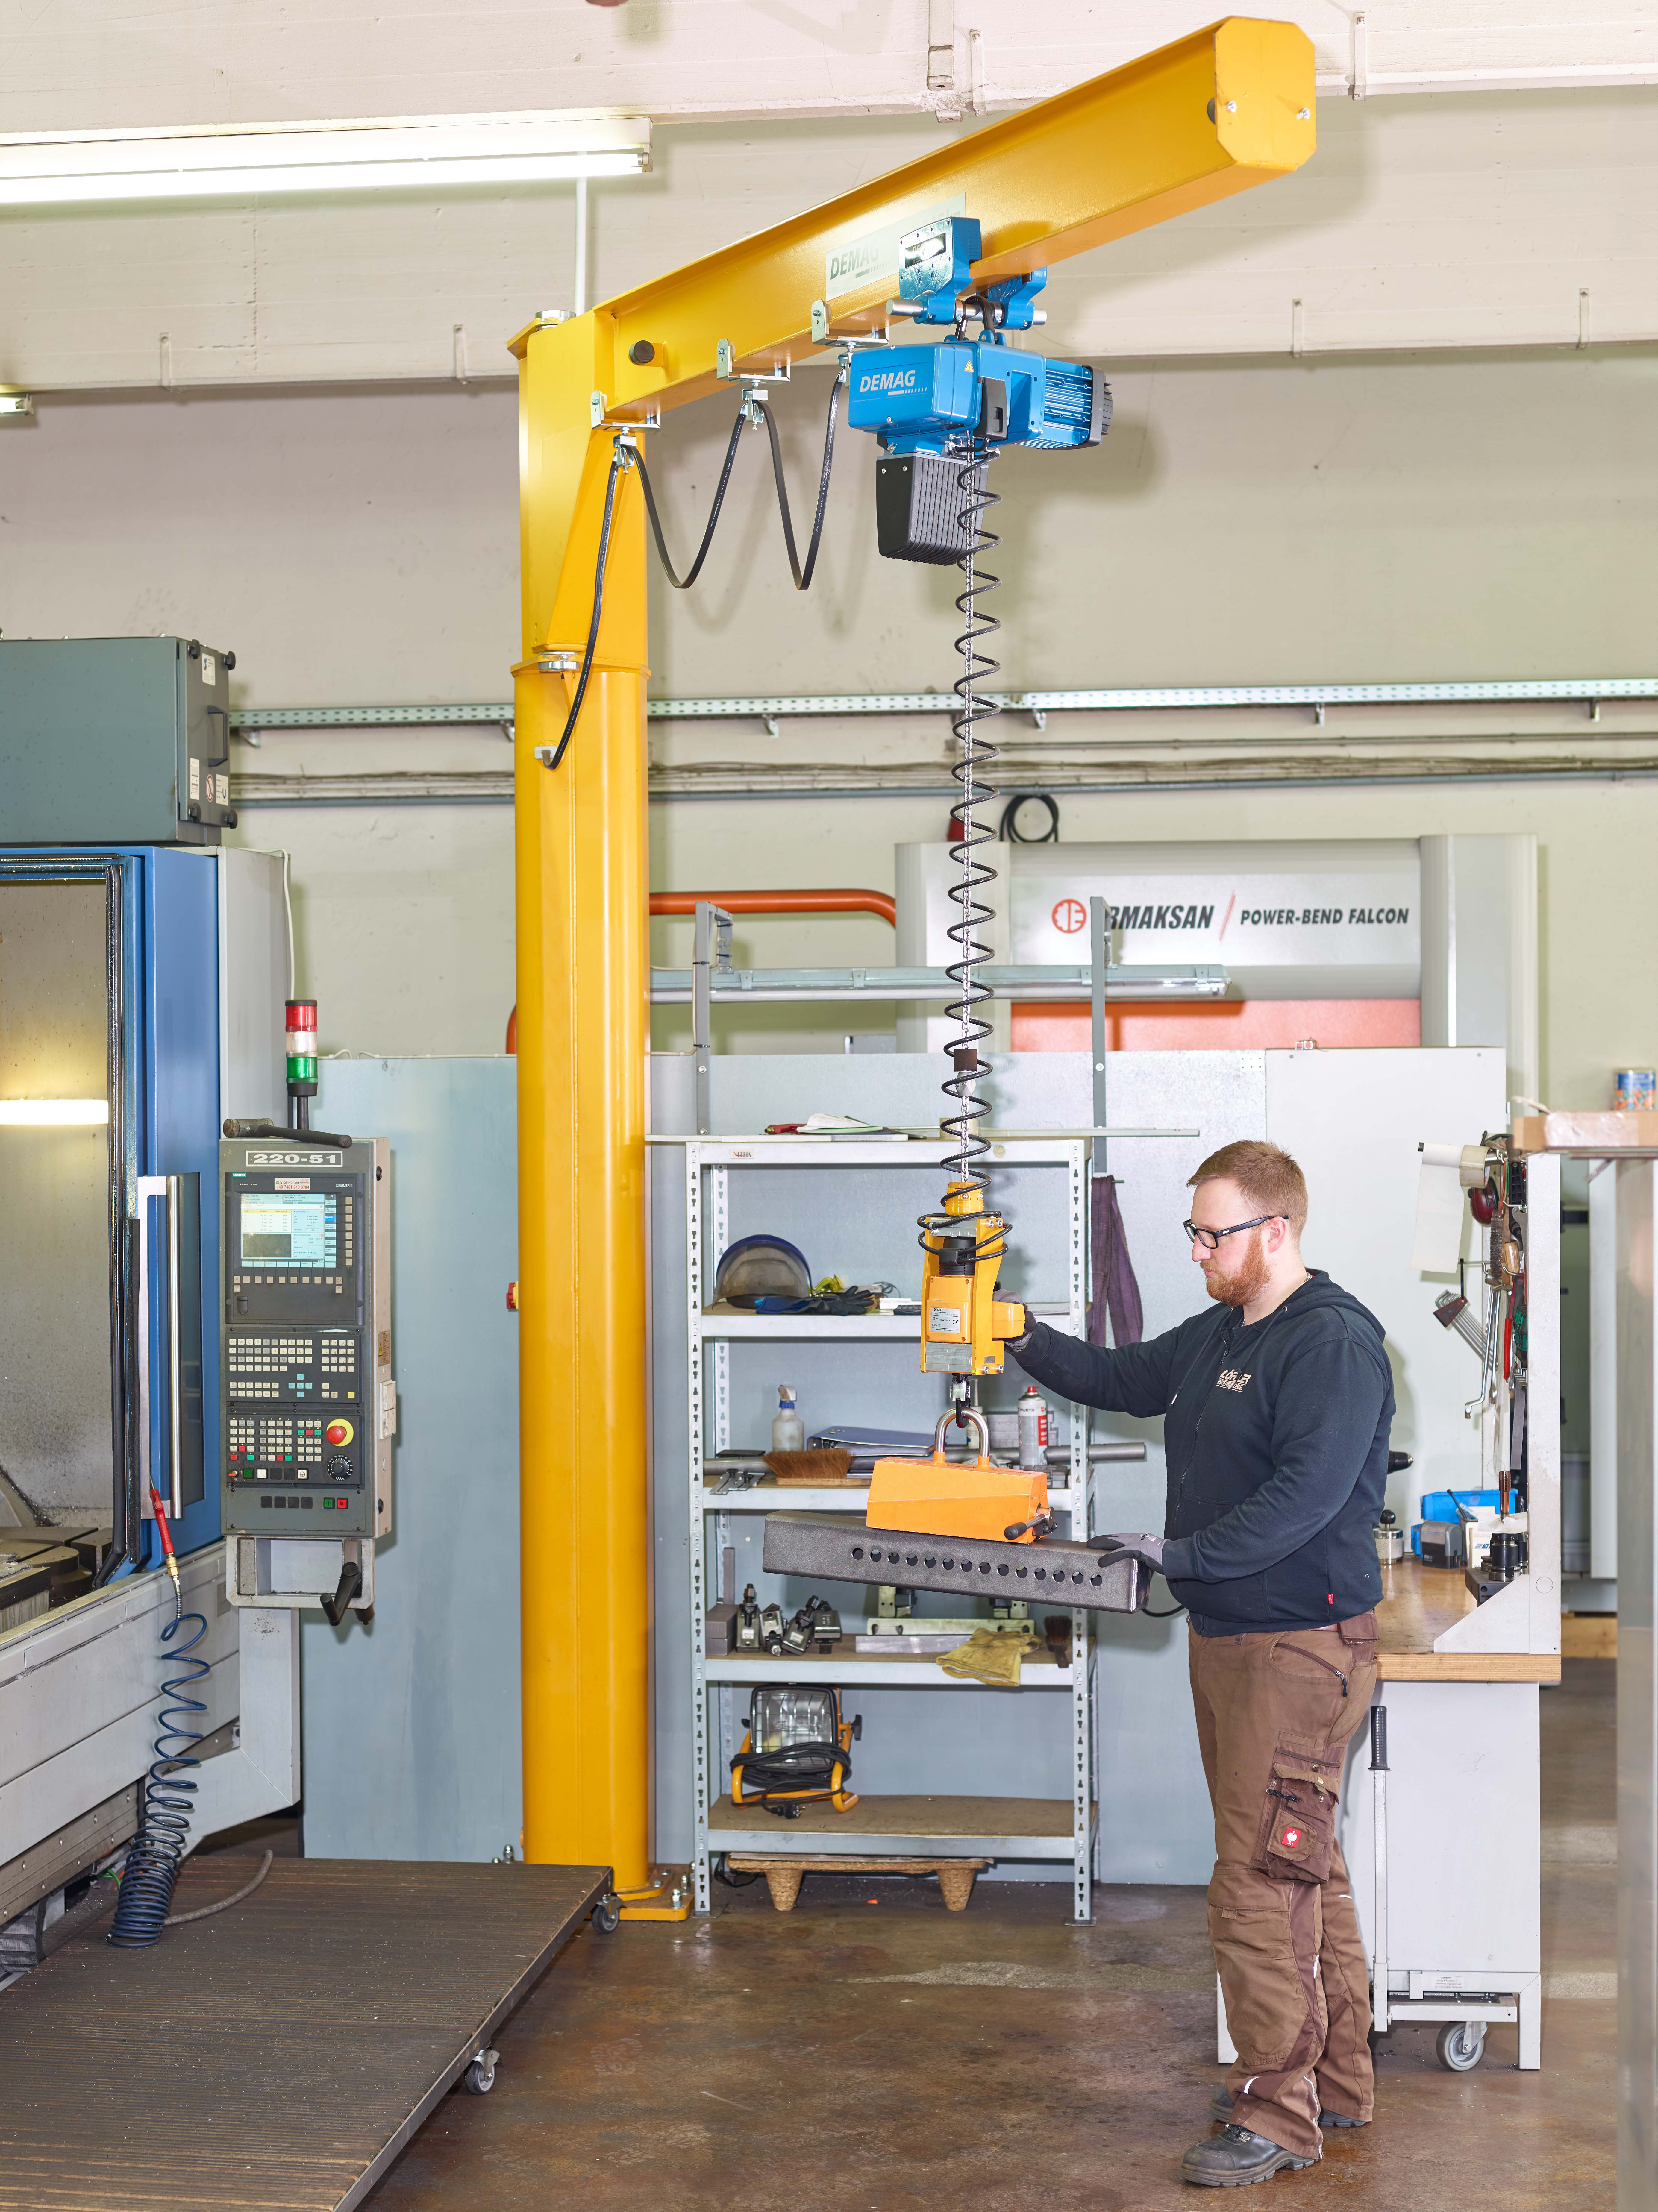 Handling with ease:  Demag Manulift for loads of up to 500 kg